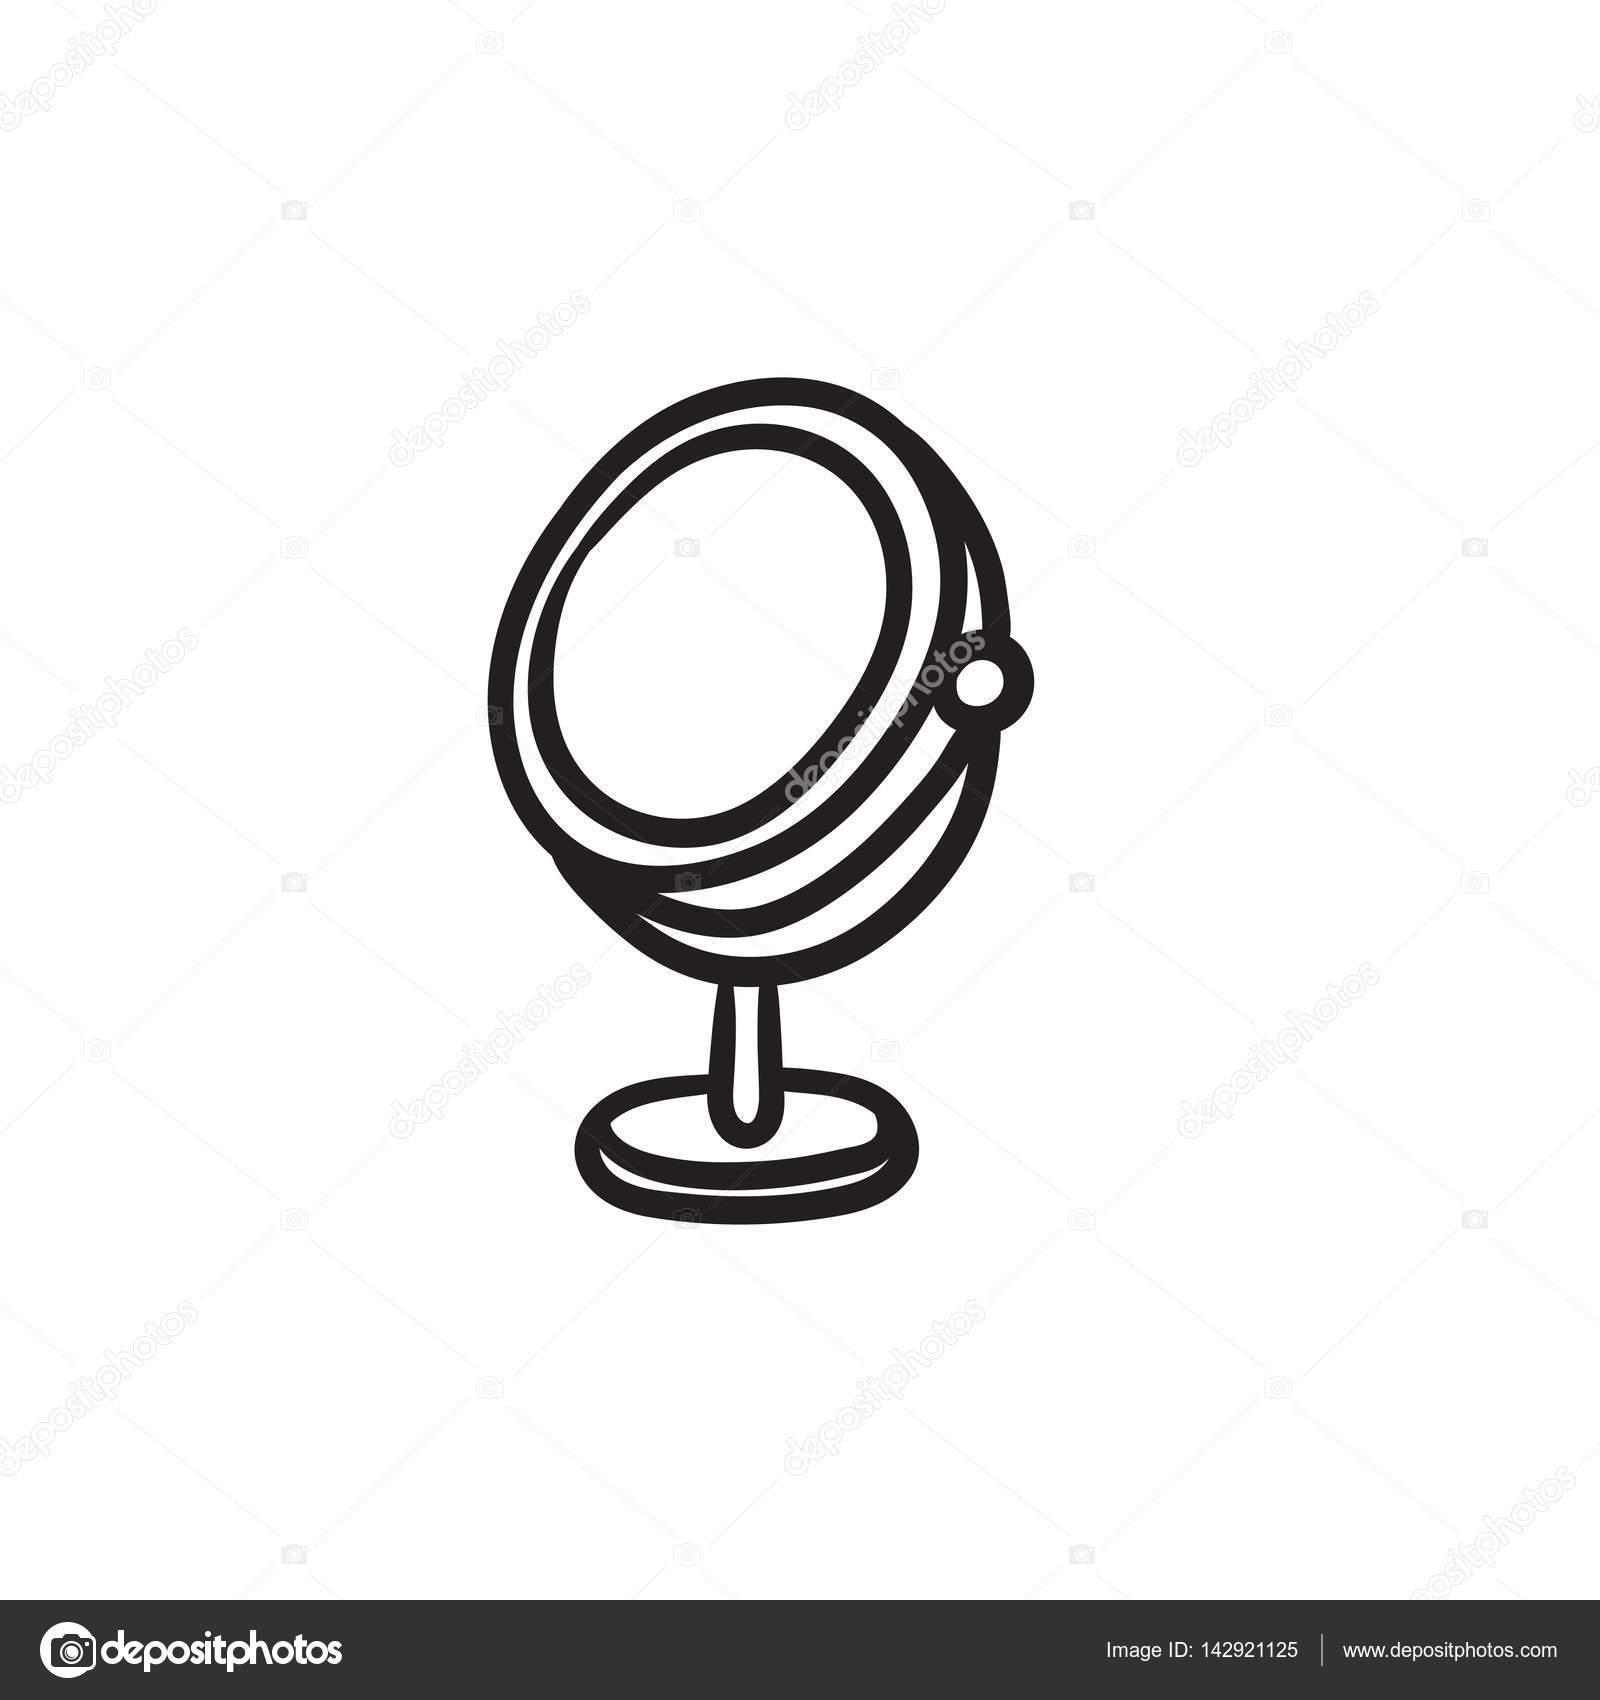 hand mirror sketch. Round Makeup Mirror Vector Sketch Icon Isolated On Background. Hand Drawn Icon. For Infographic,